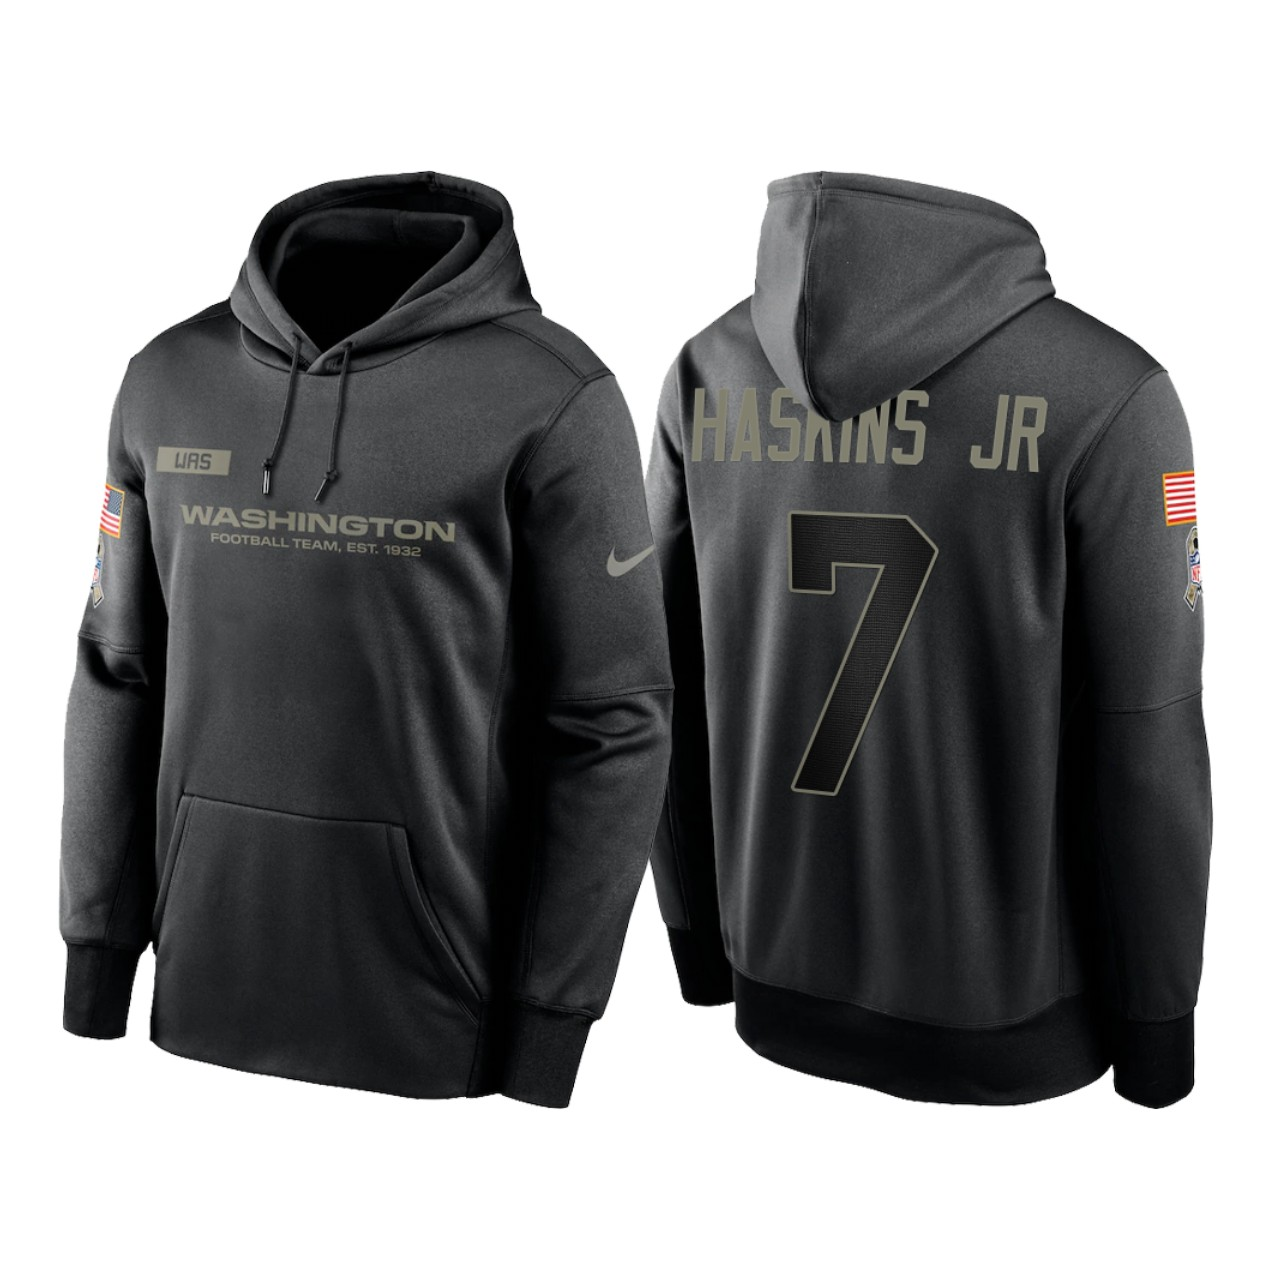 Men's Washington Football Team #7 Dwayne Haskins Jr. 2020 Black Salute to Service Sideline Performance Pullover Hoodie